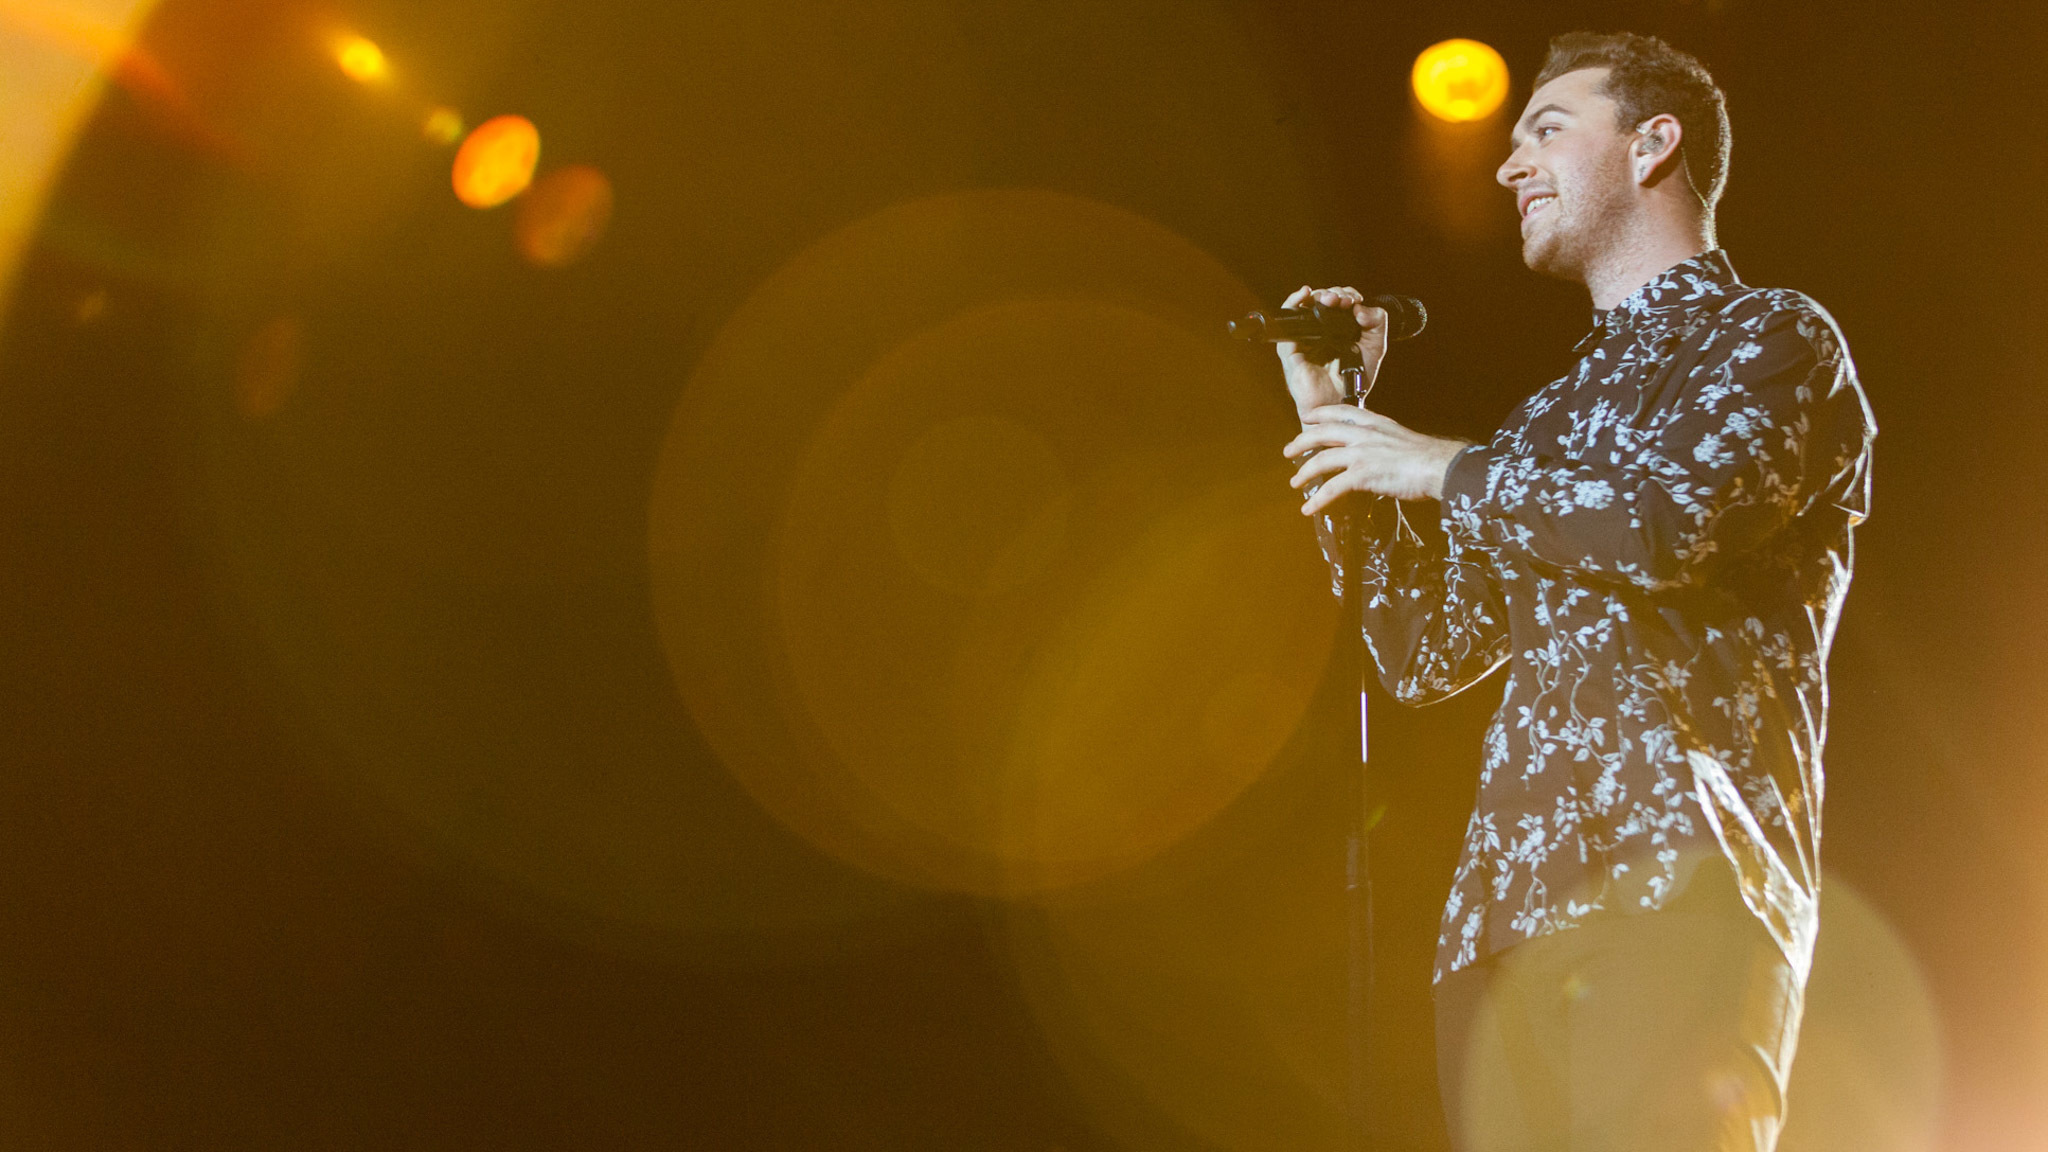 Sam Smith turned in a set in front of a crowd of thousands at Lollapalooza on August 1, 2015.